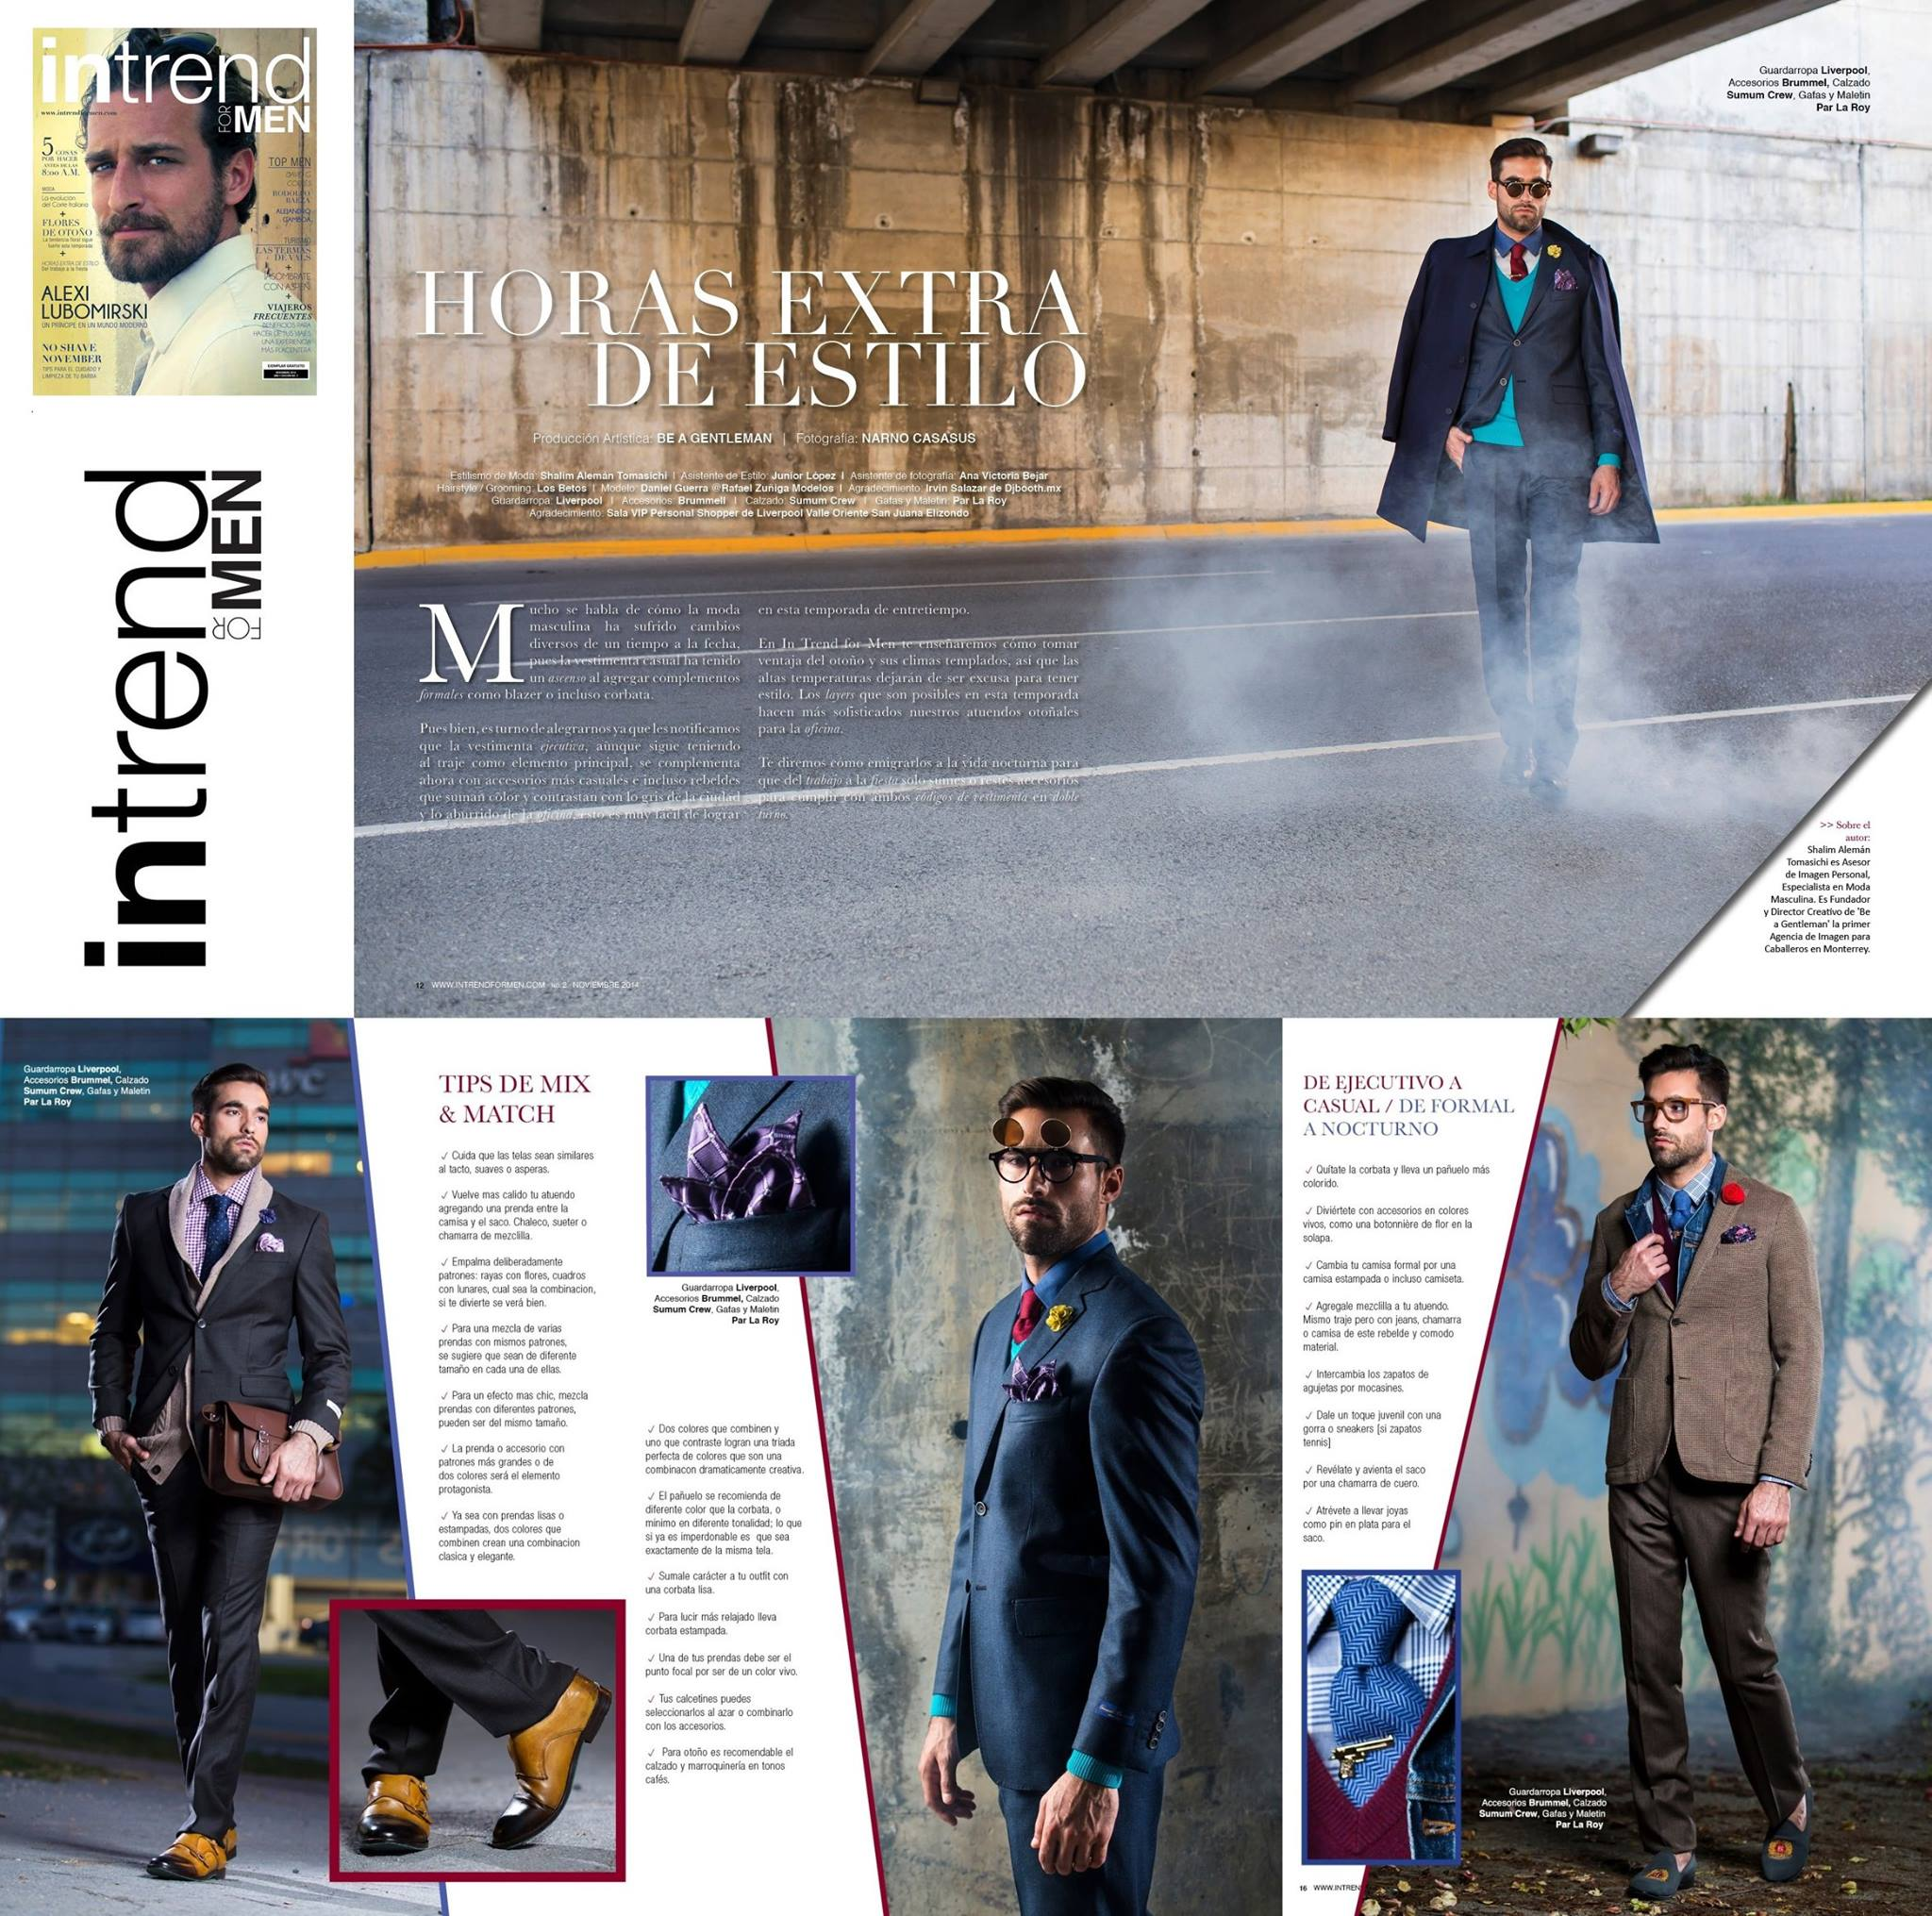 INTREND FOR MEN MAGAZINE